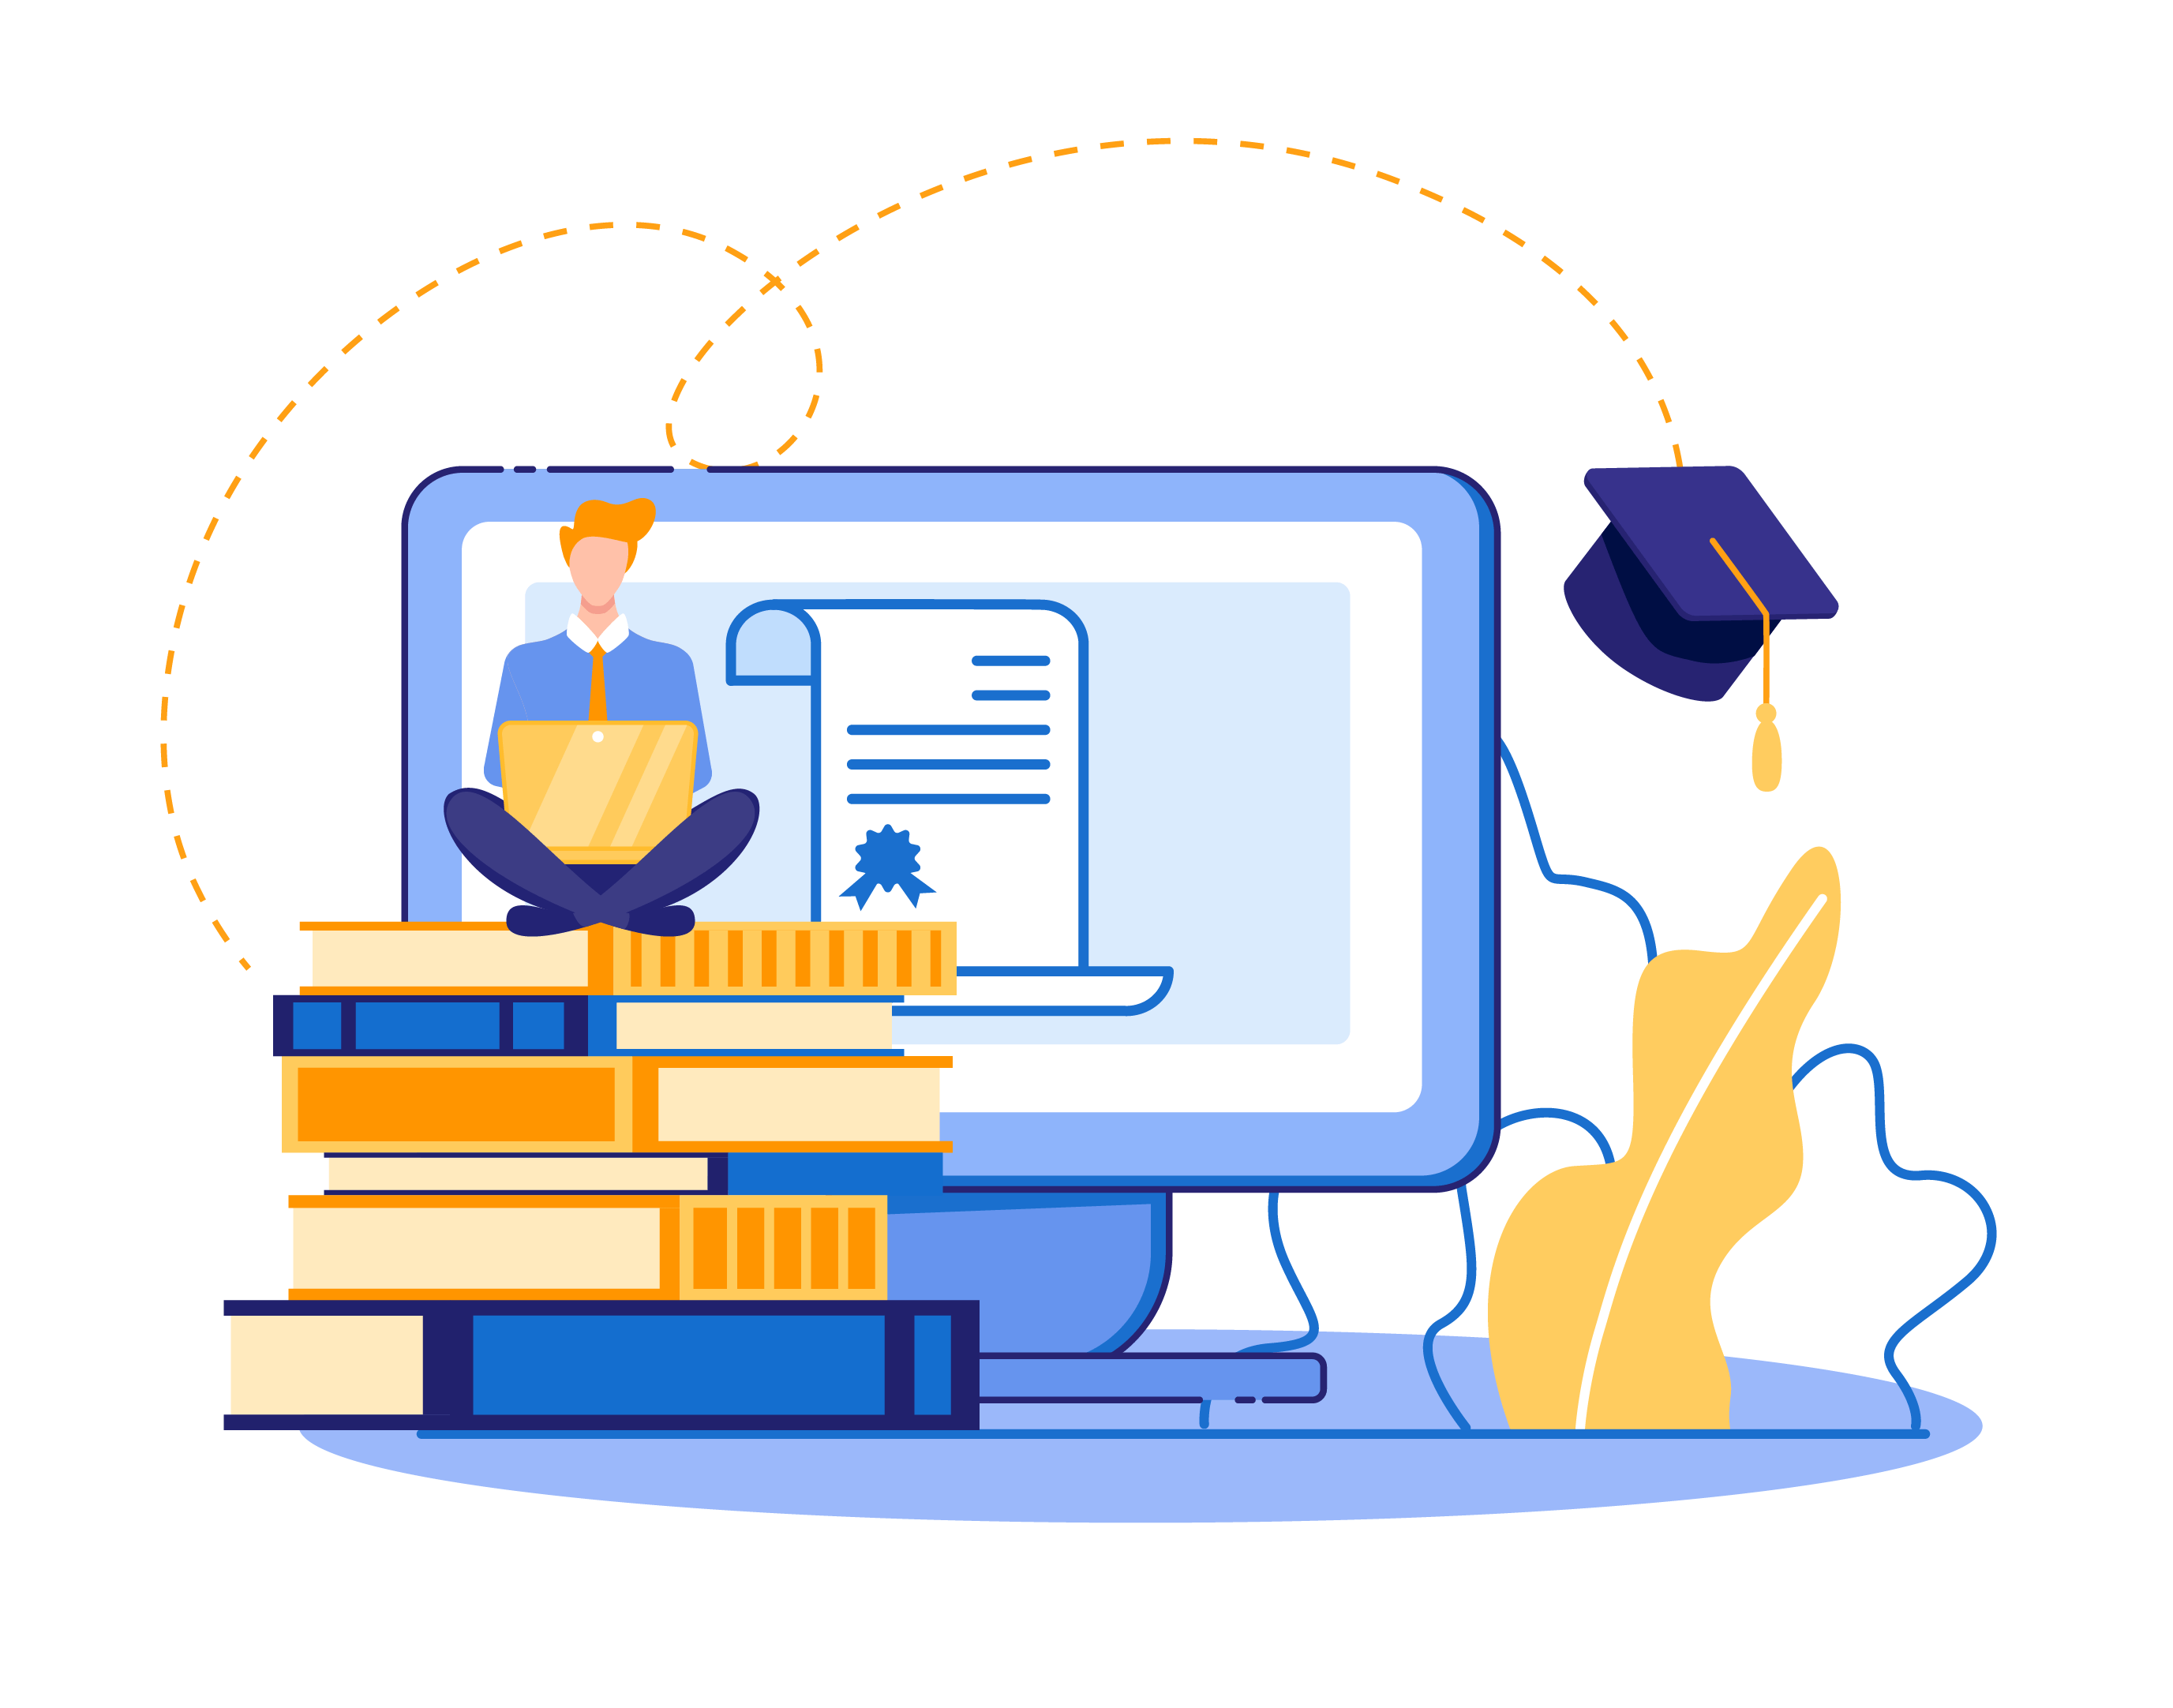 a stack of books, diploma, graduation hat, and computer